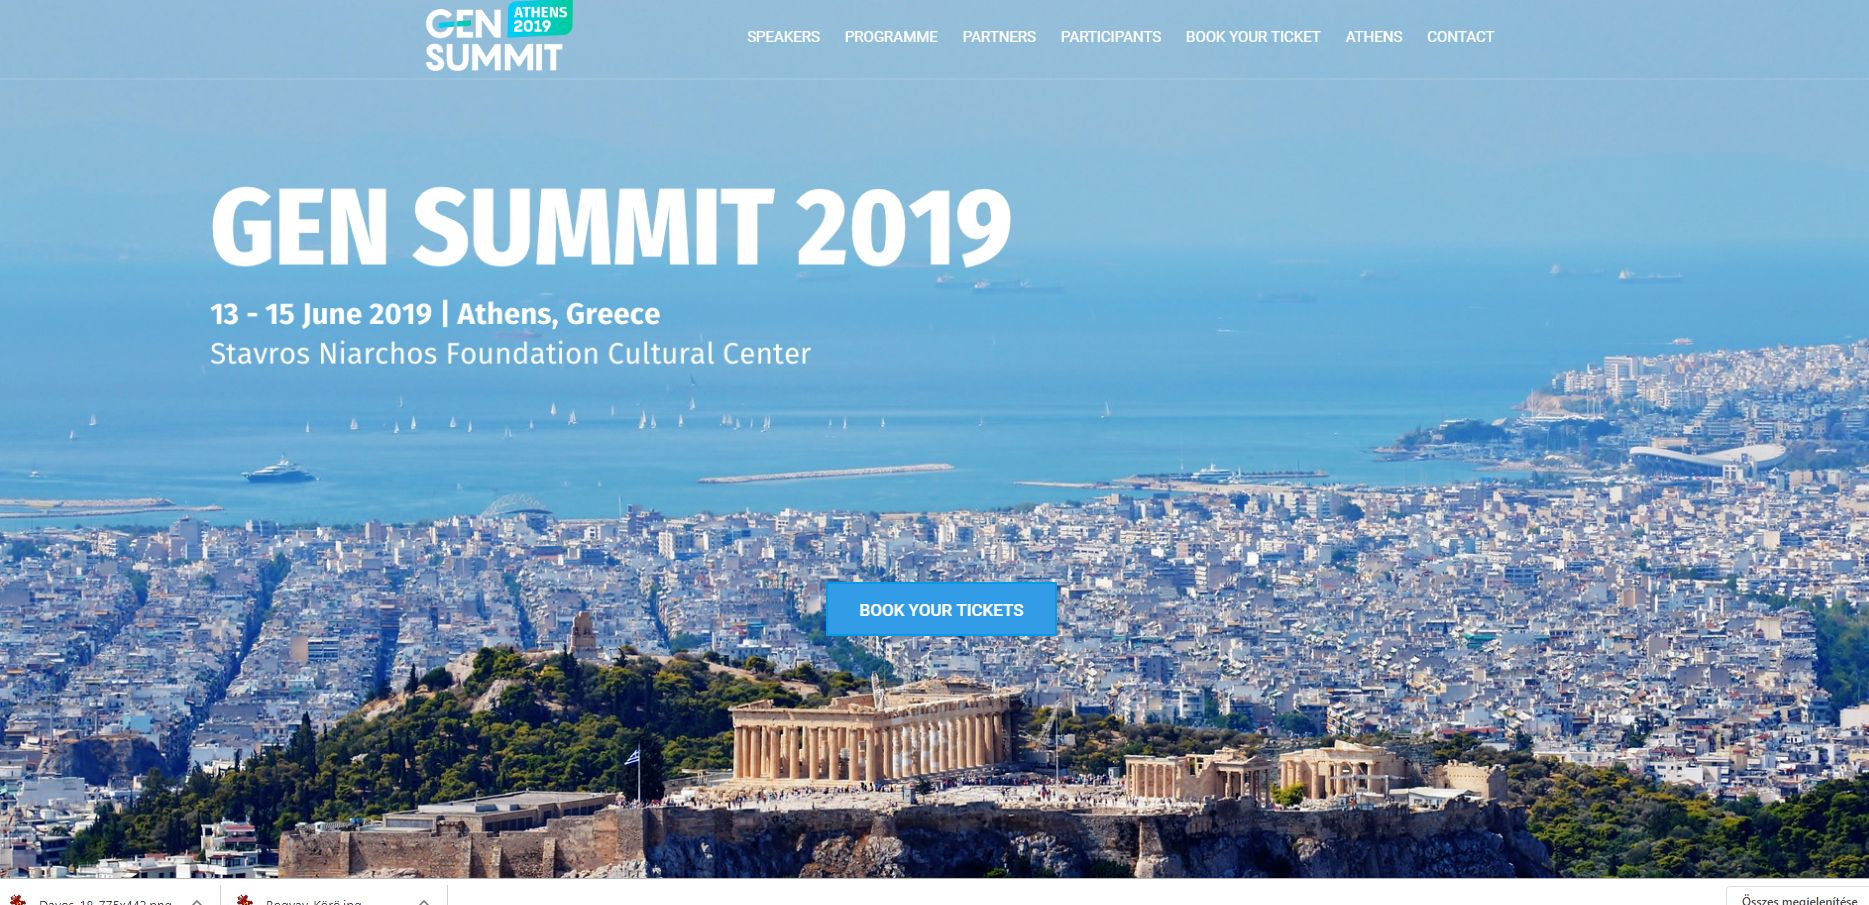 eCCO Magazine recommend the Ninth Annual GEN Summit - the leading editorial conference organised by the Global Editors Network in Athens, GR, from 13 - 15 June